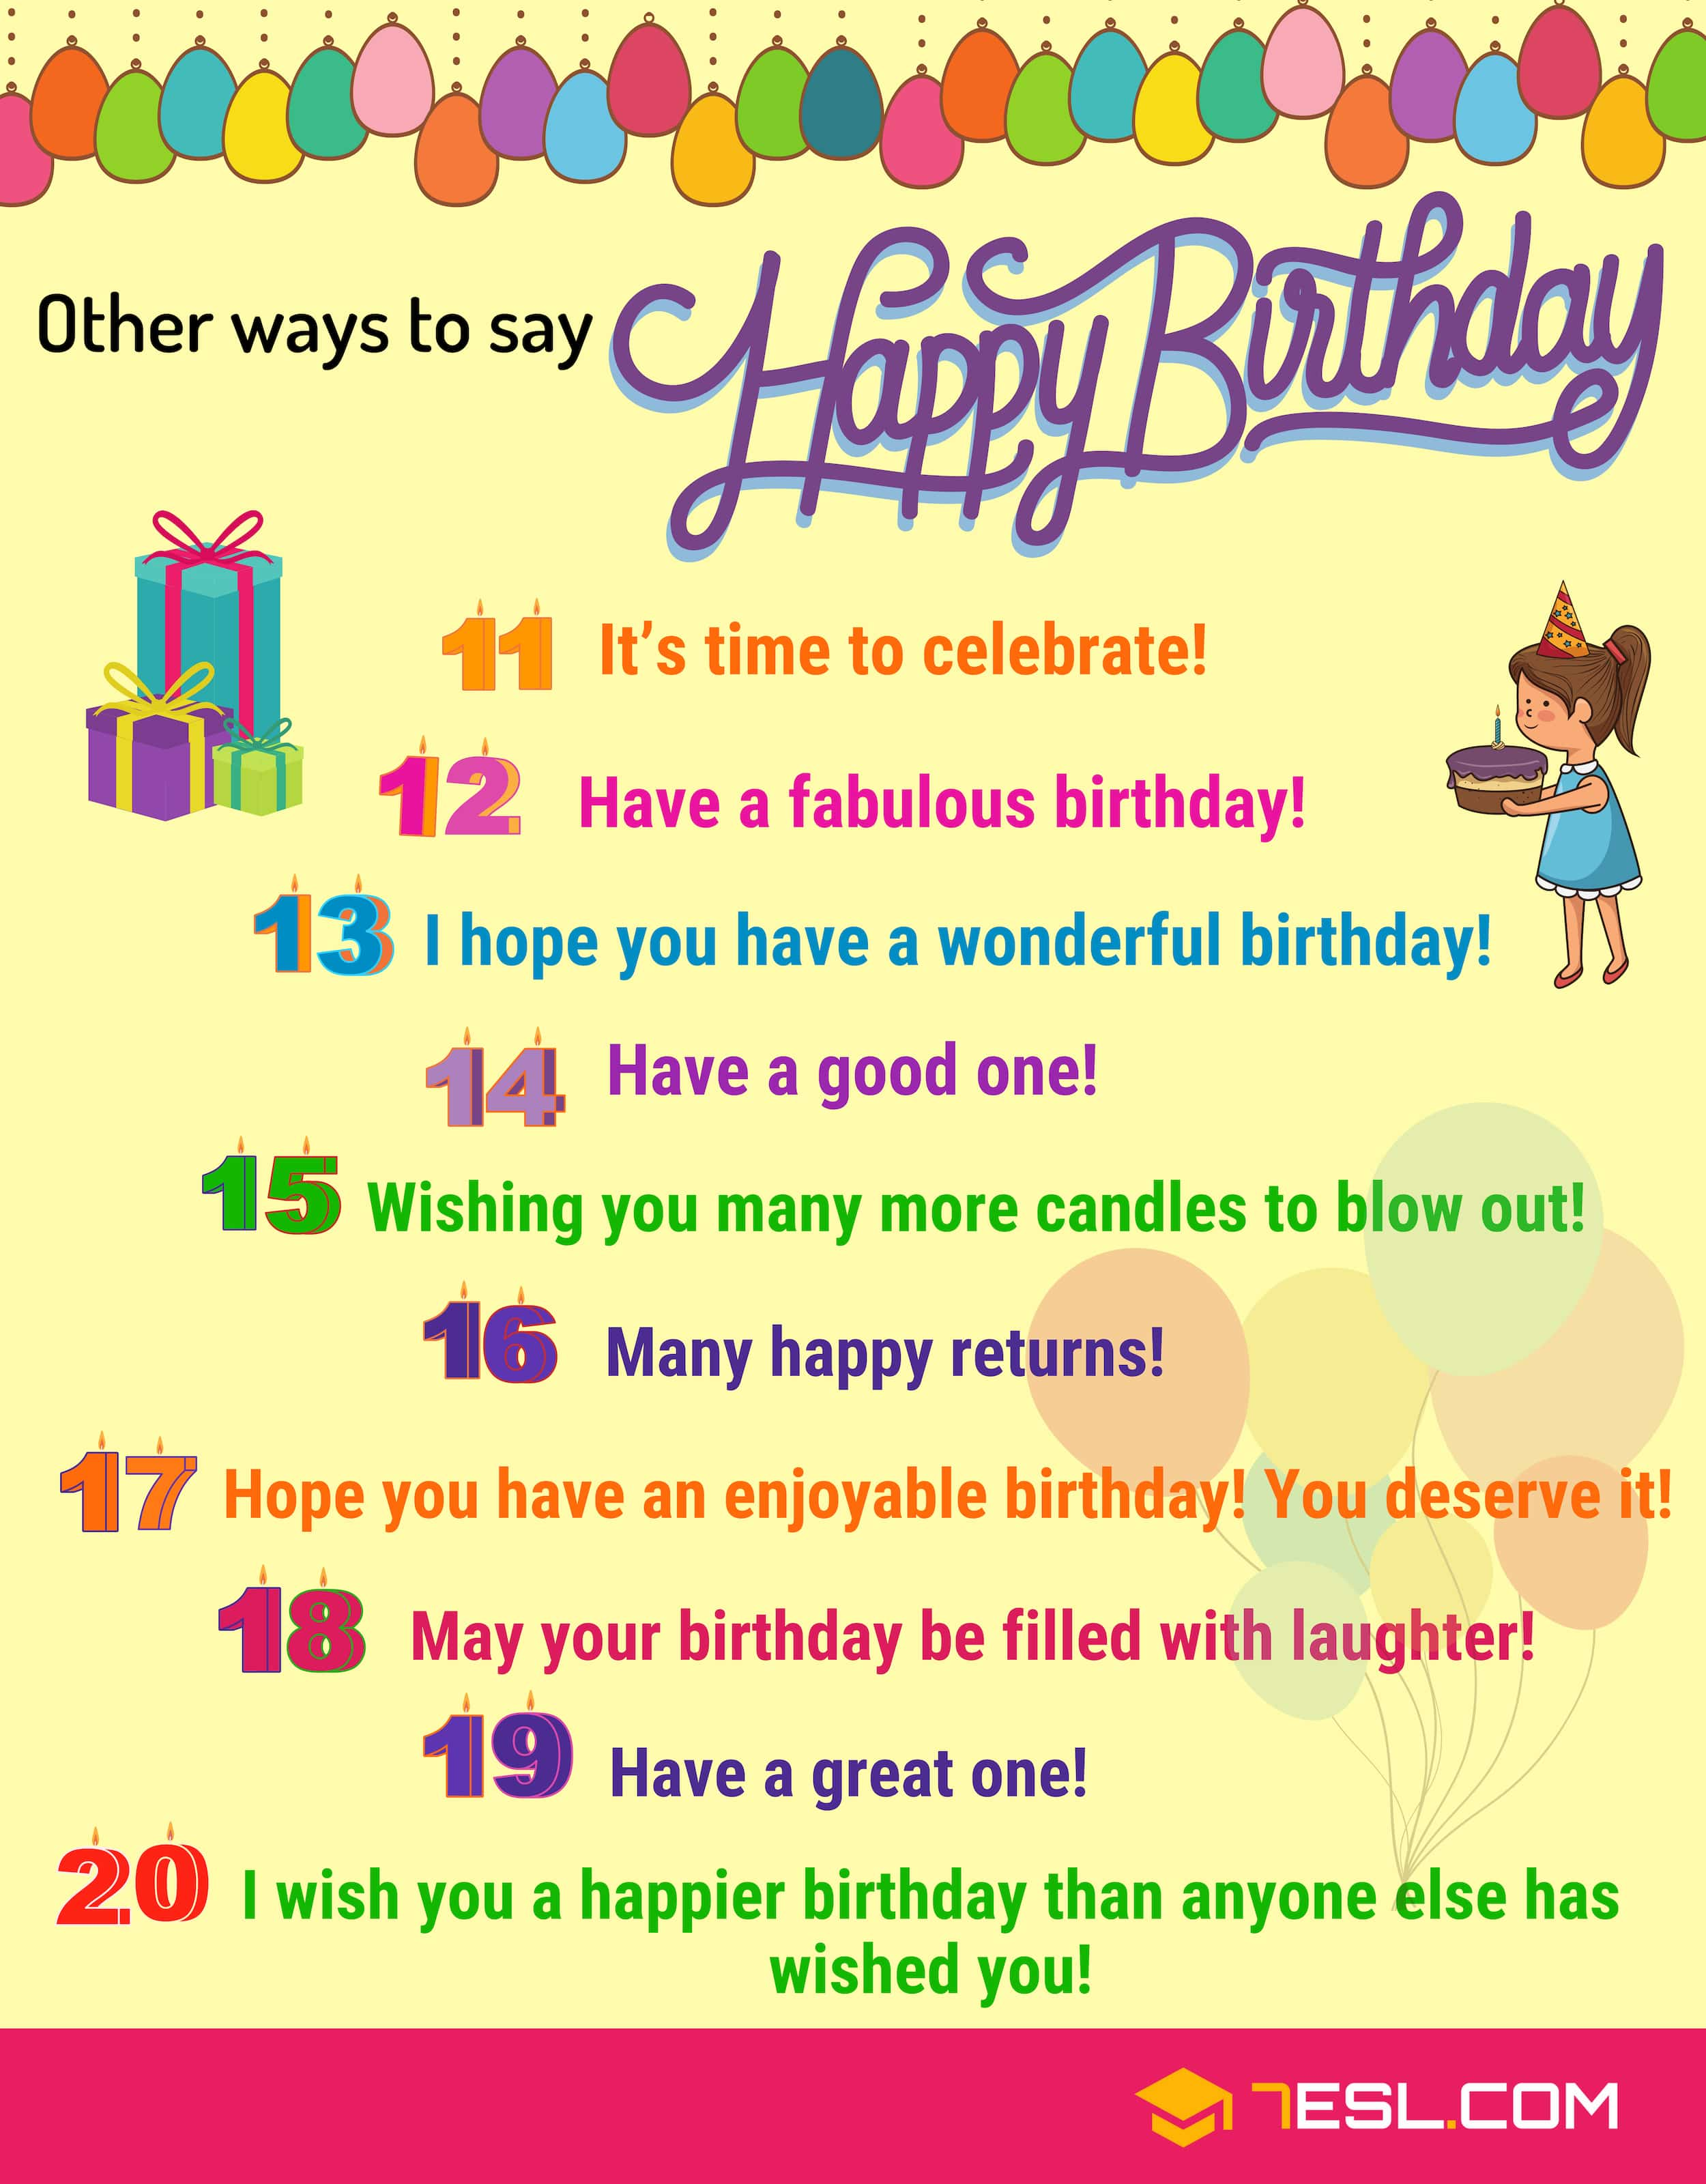 25 Cute Ways To Say Happy Birthday In English 7esl